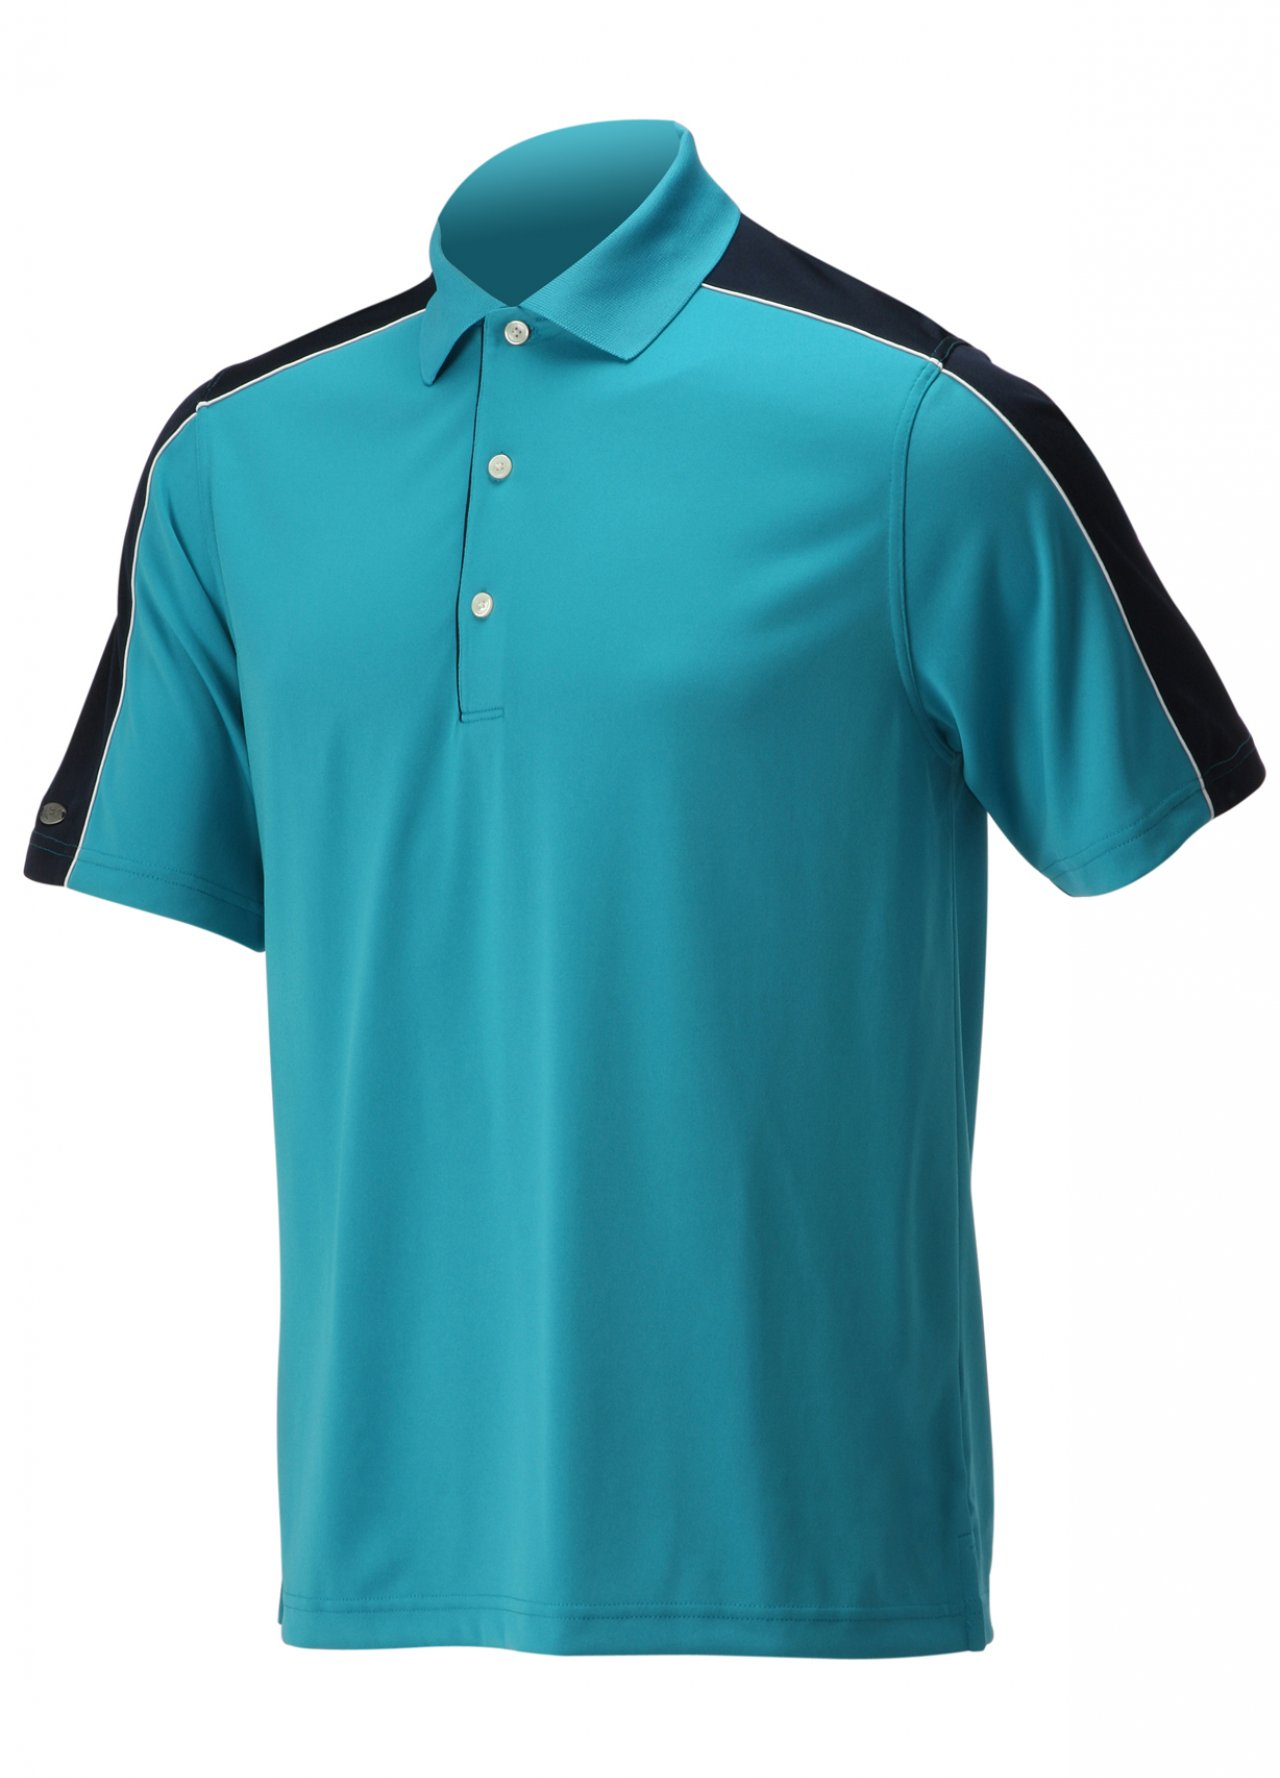 special offers county golf golf sale golf clothing